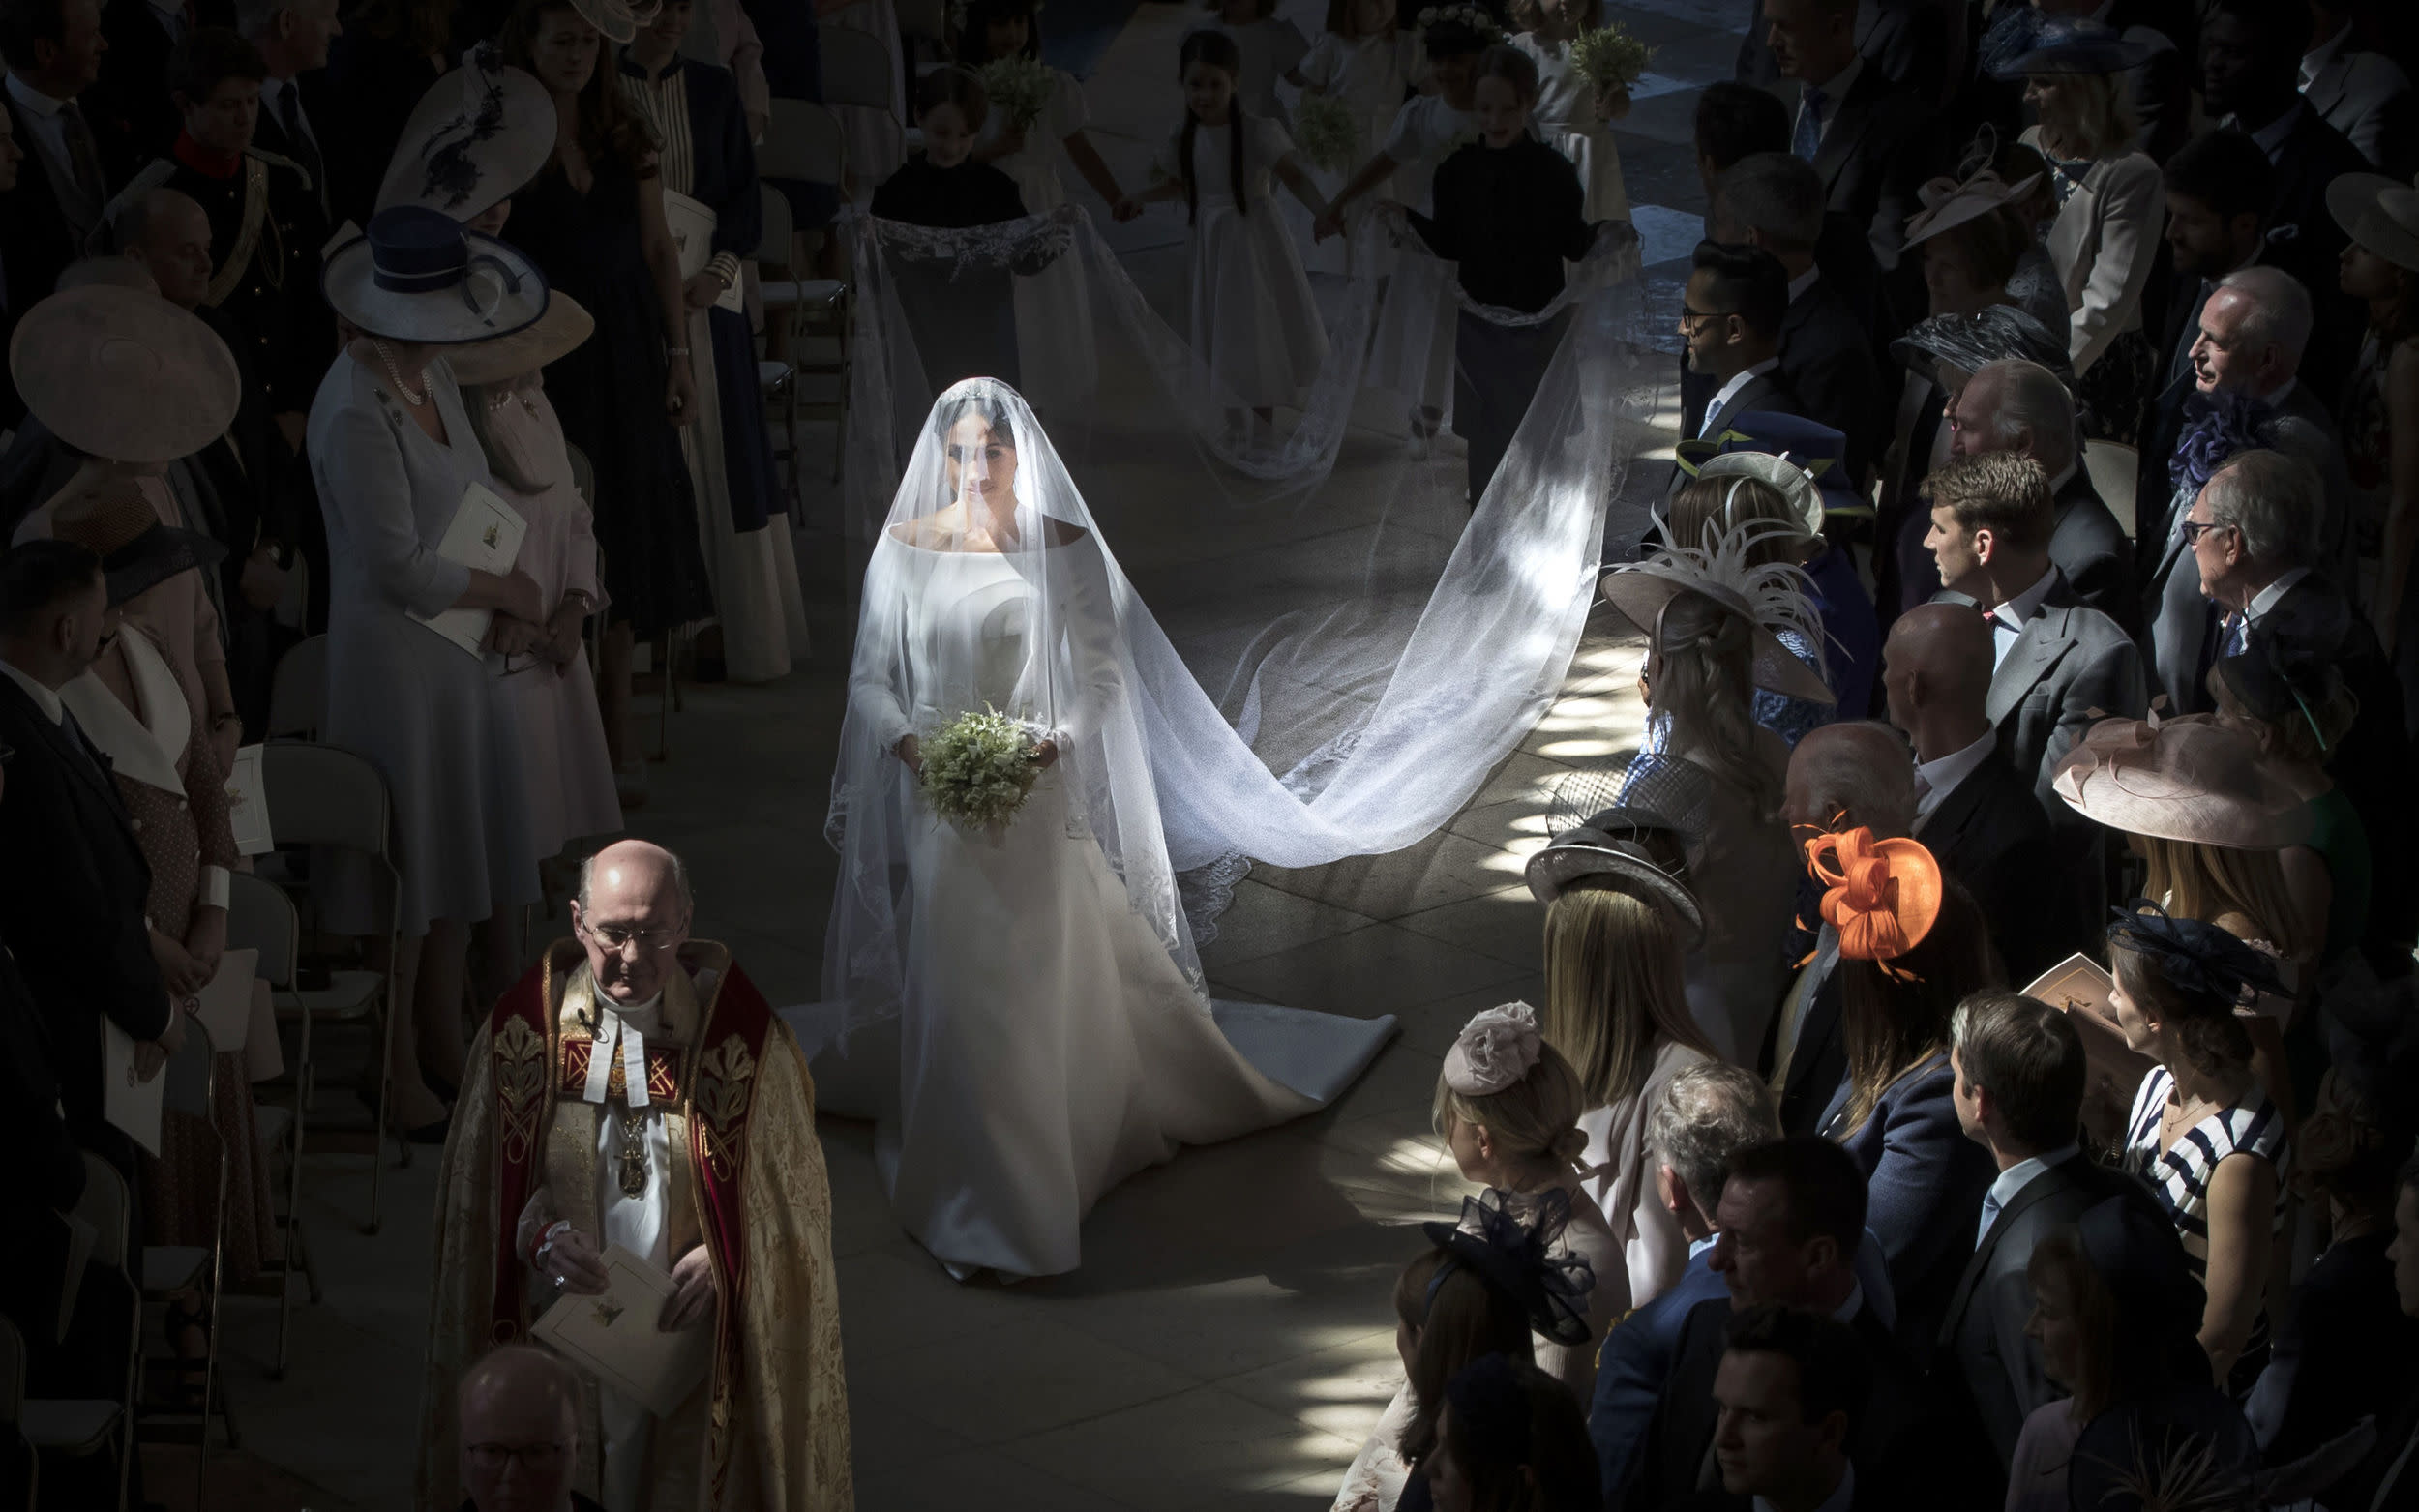 <p>Ms. Meghan Markle walks down the aisle at the start of her wedding to Prince Harry in St George's Chapel at Windsor Castle on May 19, 2018 in Windsor, England.</p>  <p>(Photo by Danny Lawson - WPA Pool/Getty Images)</p>